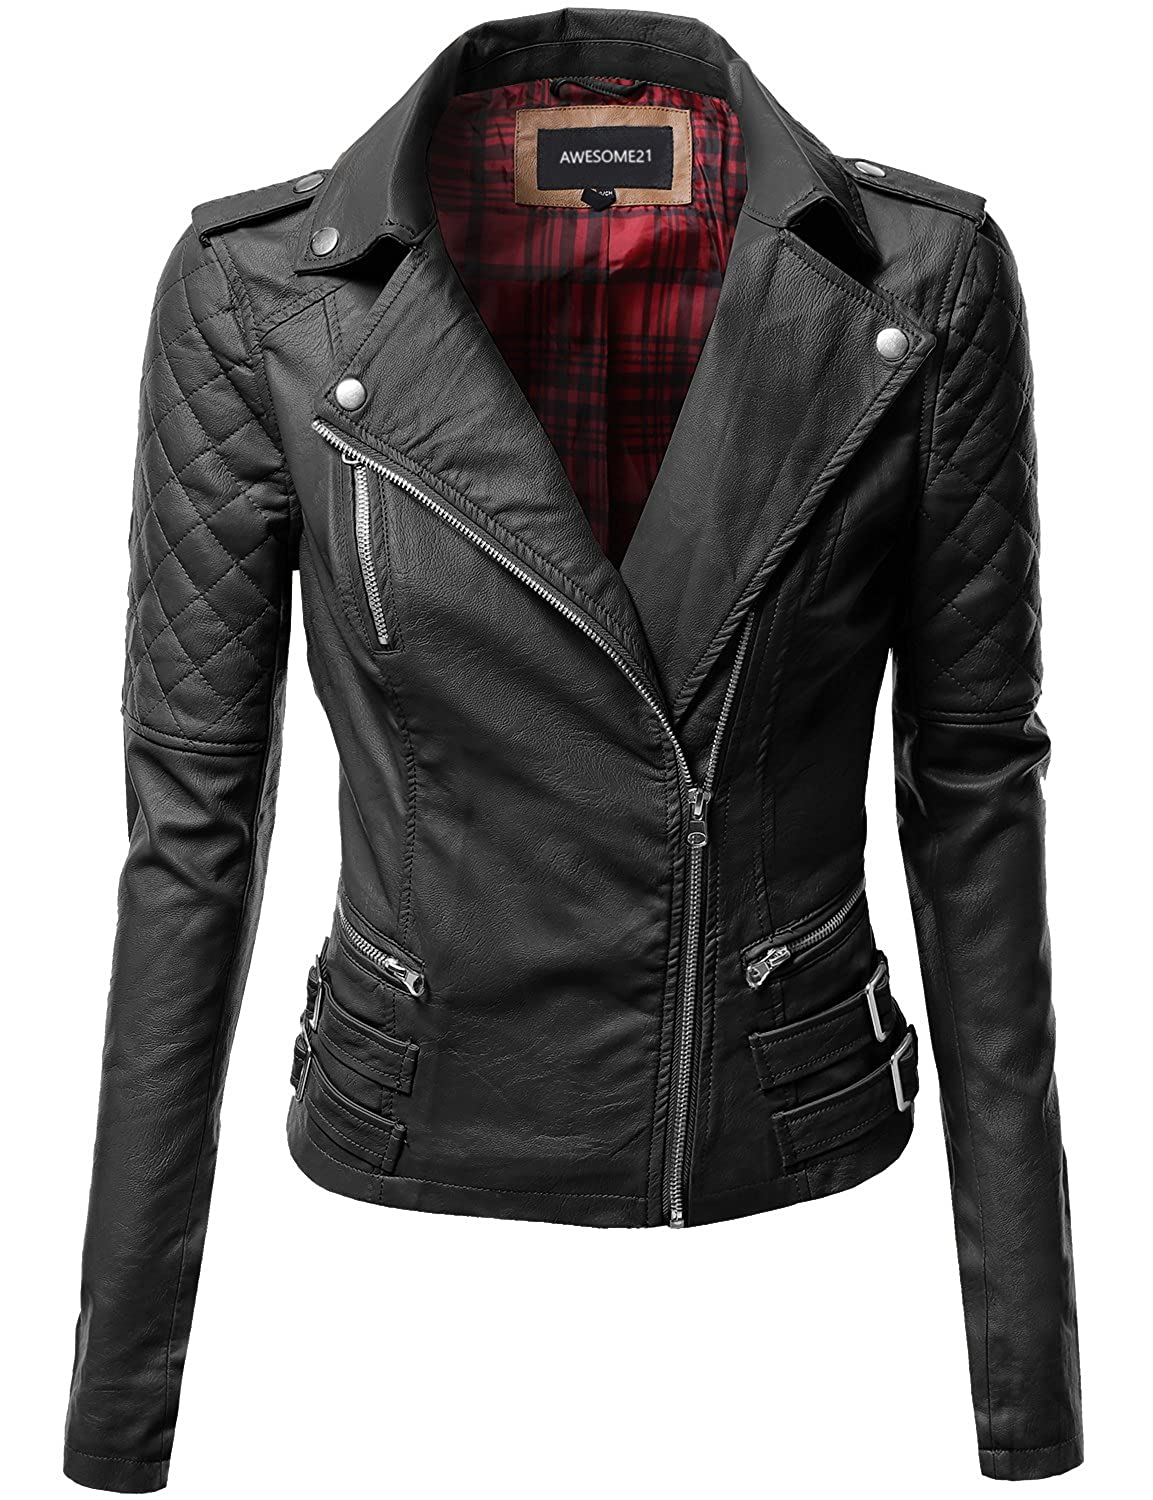 Awesome21 Women's Qulited Sleeve Classic Rider Style Faux Leather ...